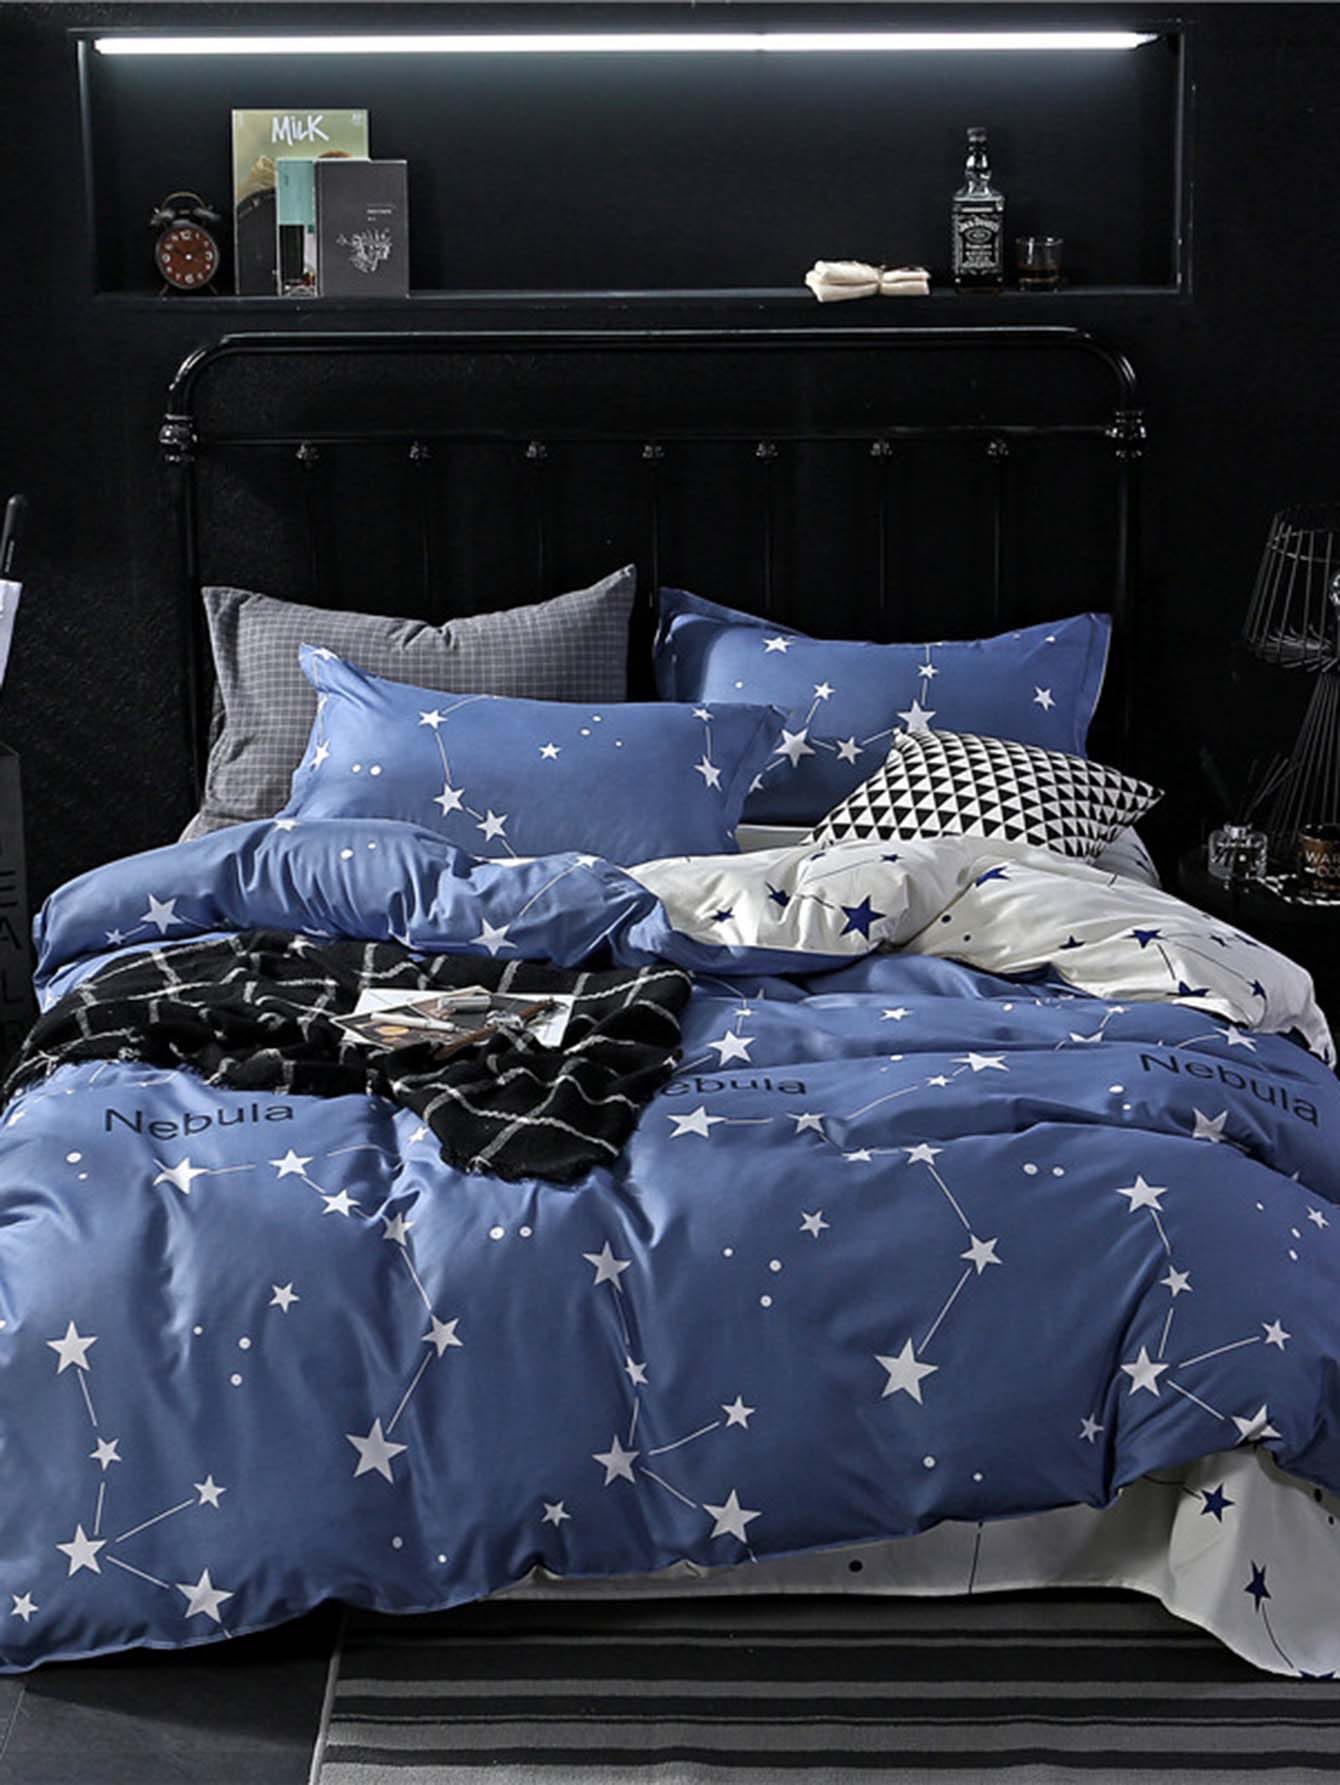 housse de couette imprim e lettre et toile french romwe. Black Bedroom Furniture Sets. Home Design Ideas